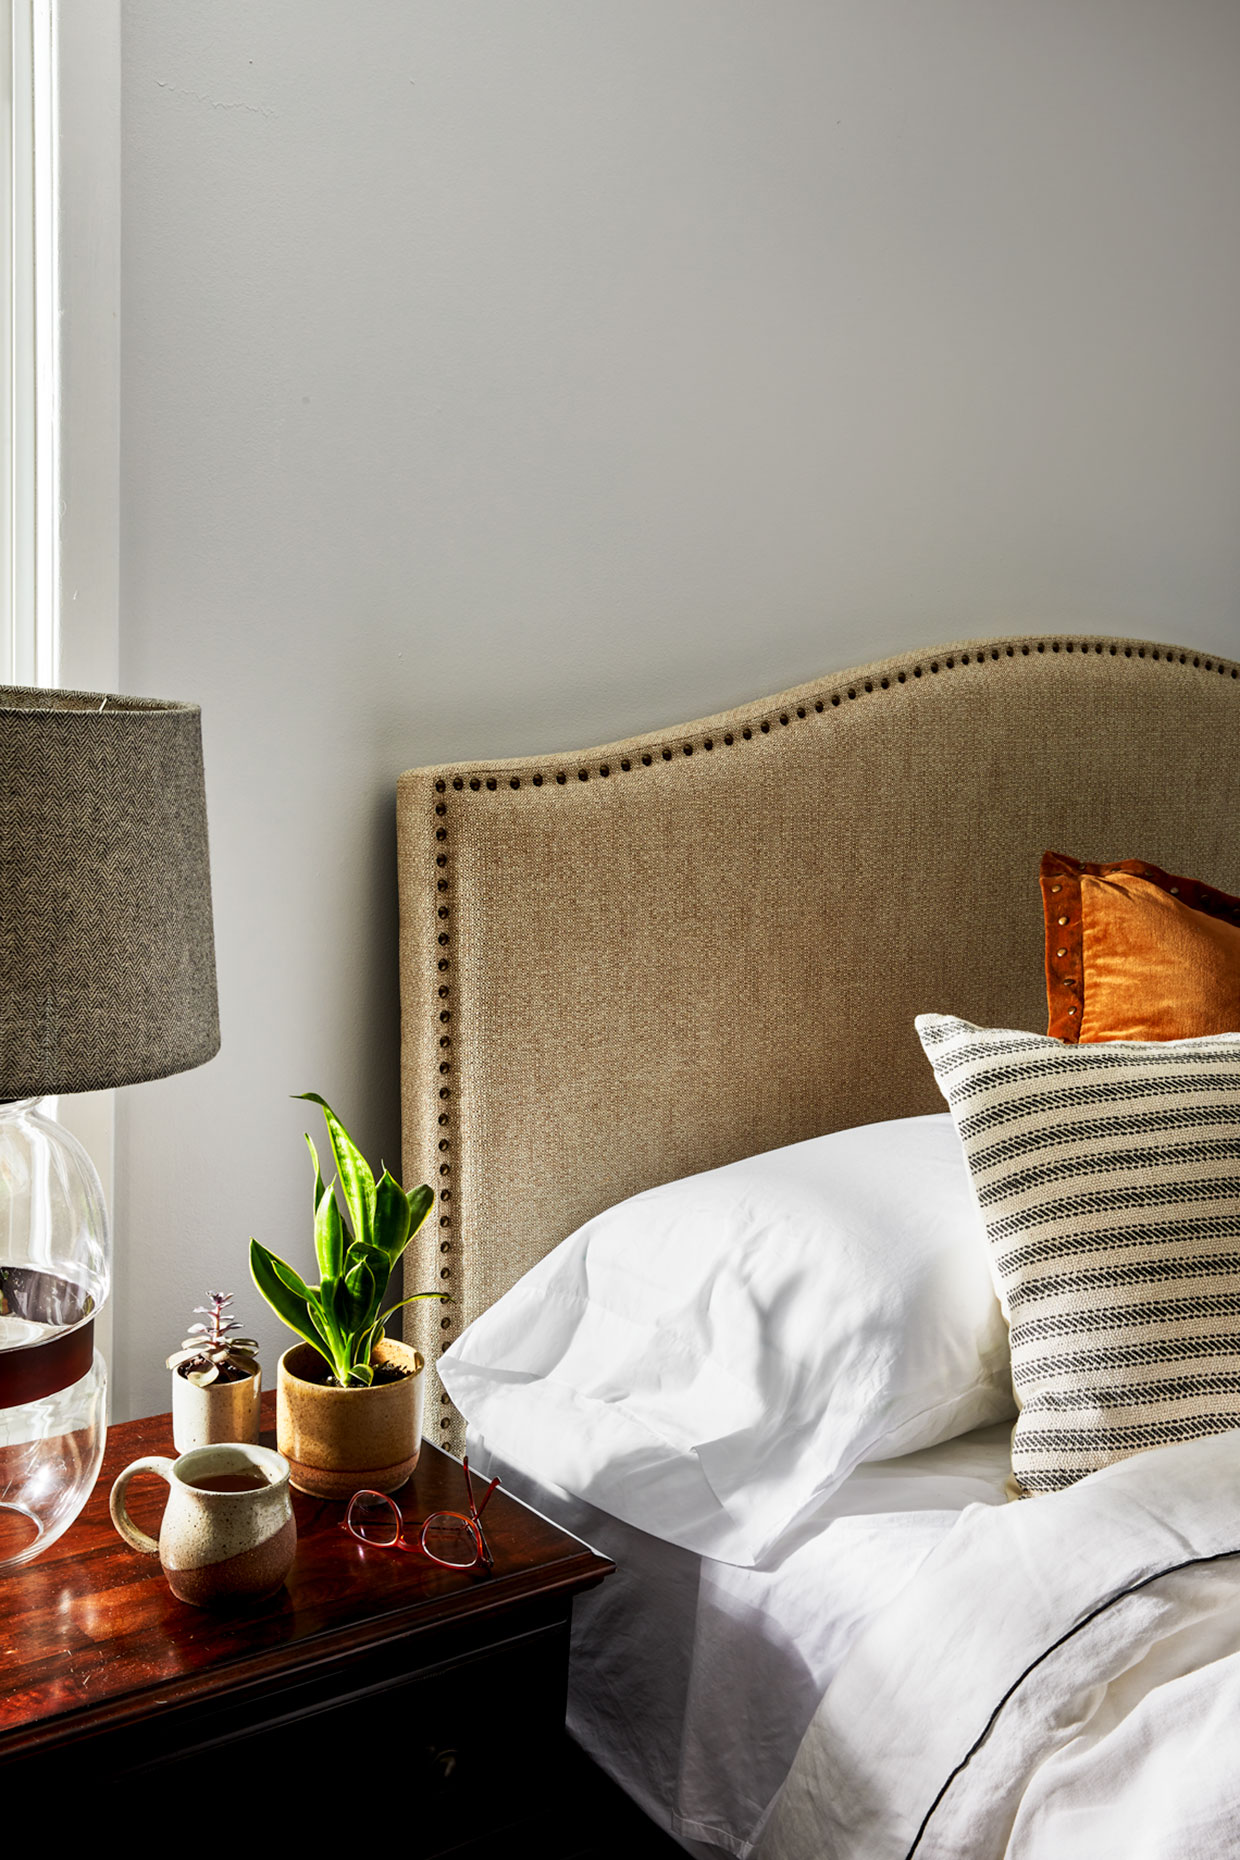 Allswell-Americano-Jet-Bedding-Soft-Goods-Still-Life-Photography-Photographer-New-York-Rick-Holbrook-Bedside-Interiors